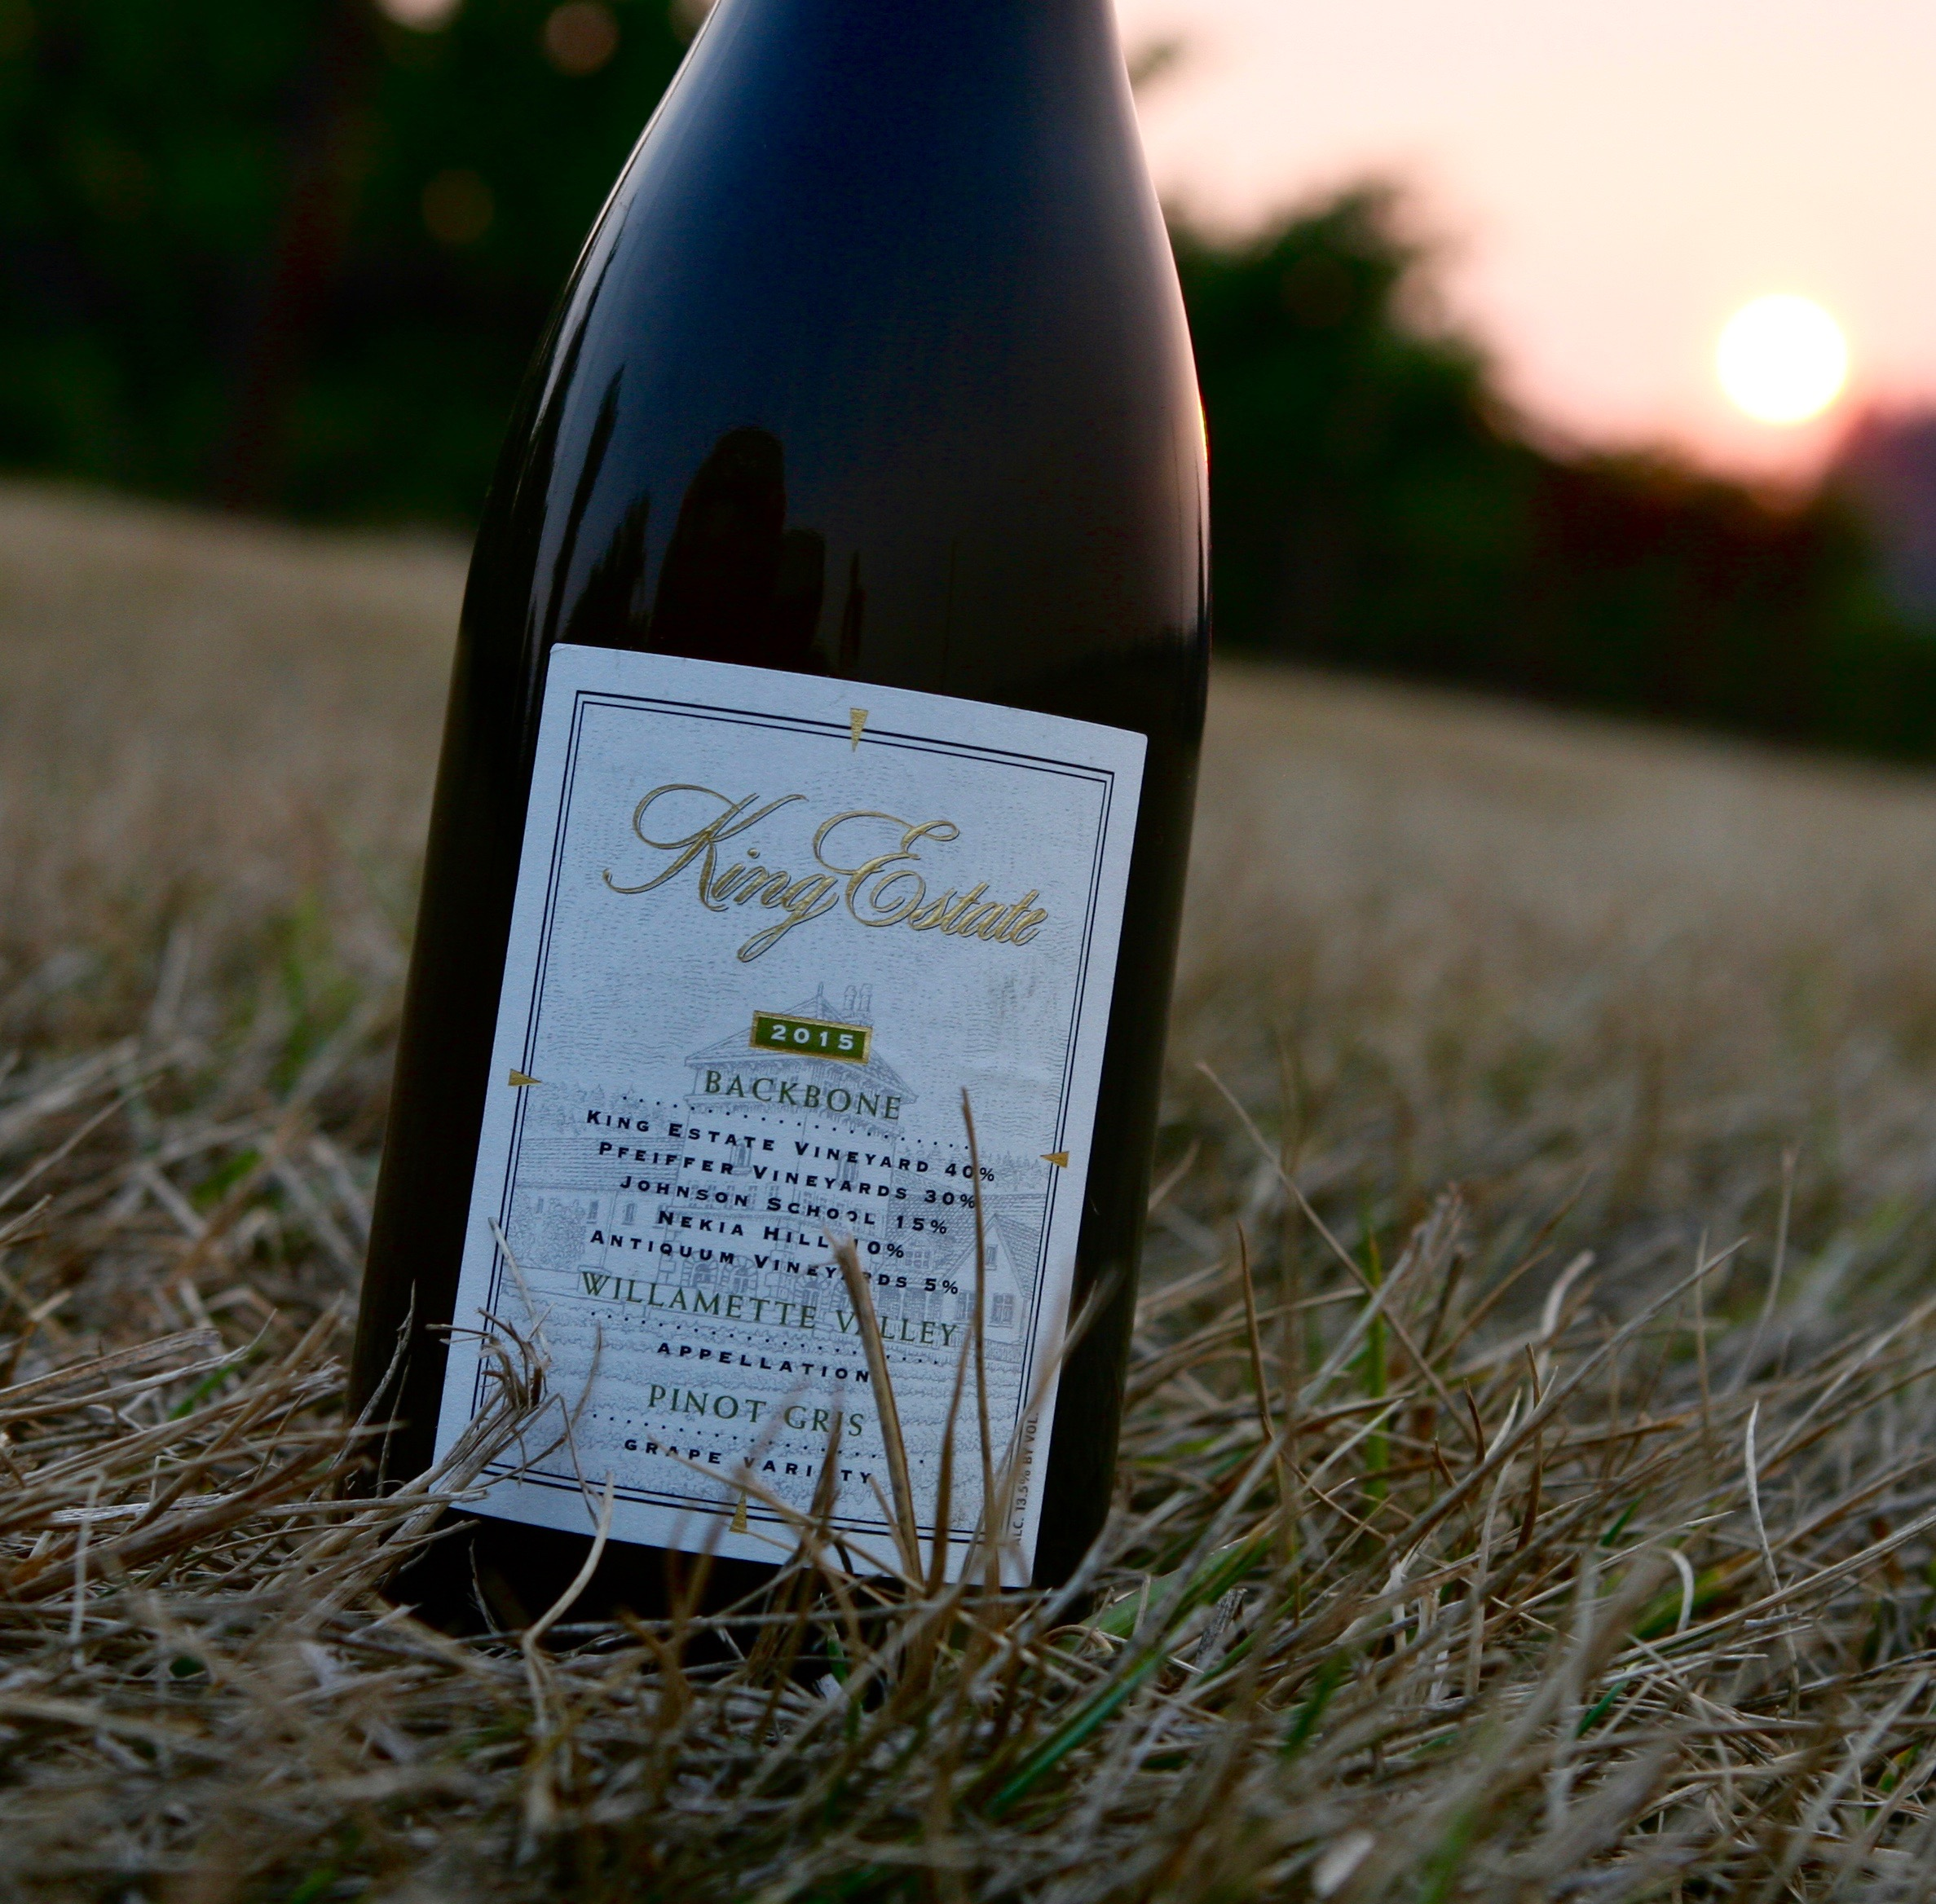 The 2014 & 2015  Backbone Pinot Gris from King Estate was made with fruit from our Johnson School vineyard as well as other from other vineyards across the state. The 2014  scored a 91 and the 2015 a 92 by Wine Enthusiast.